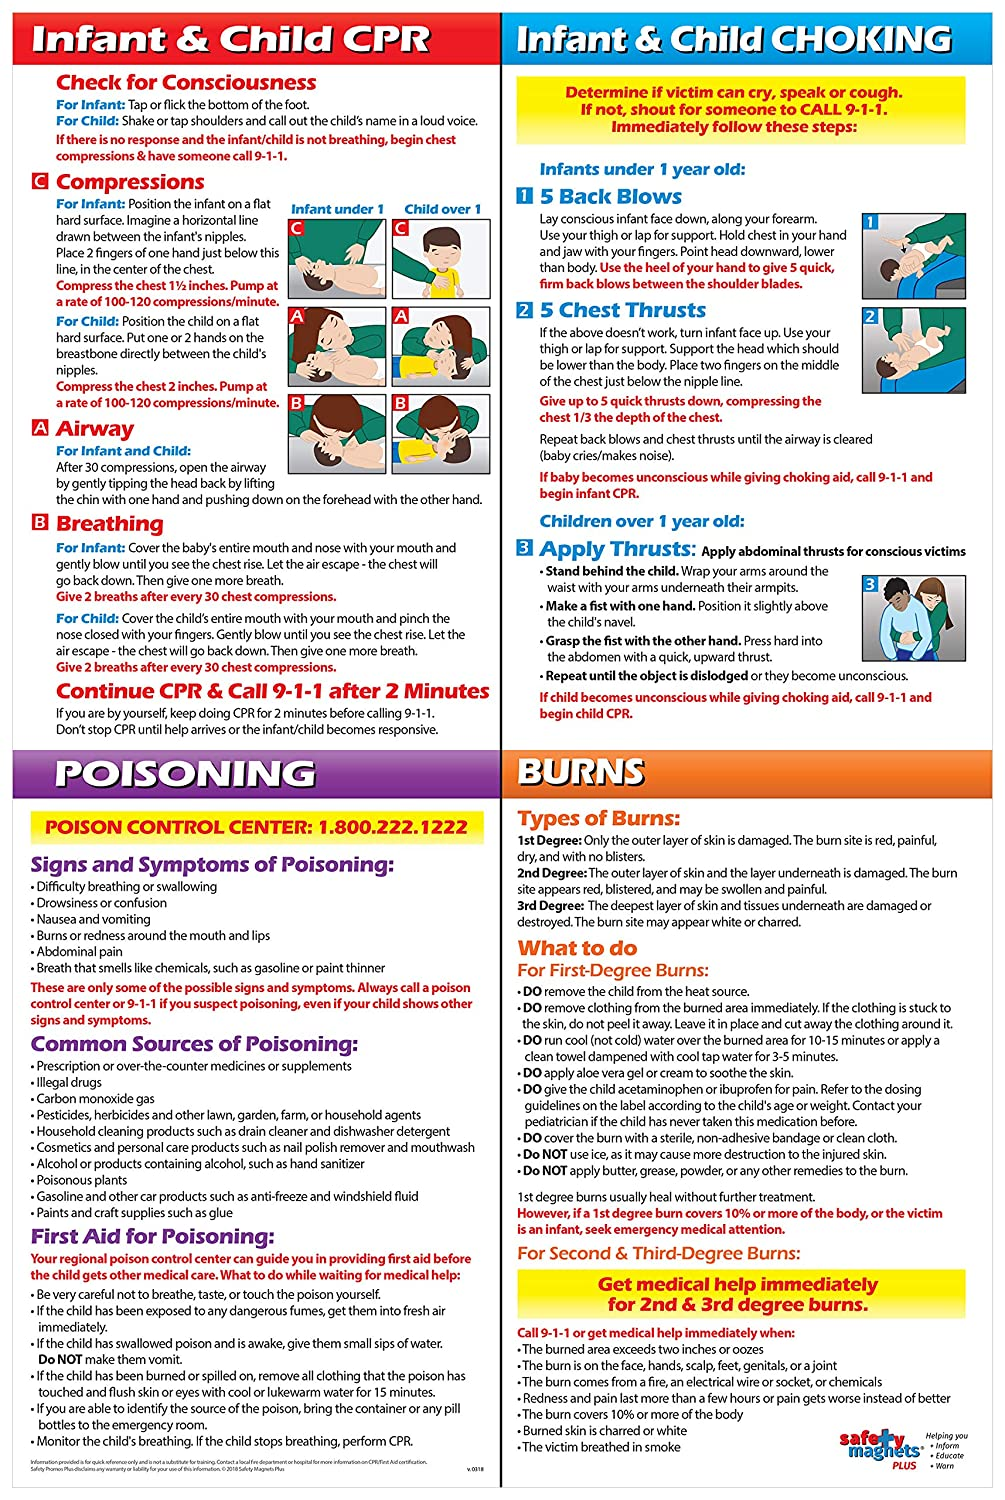 Infant & Child CPR, Choking, Poisoning & Burns First Aid Chart/Poster - 12  x 18 in  - Non-Laminated